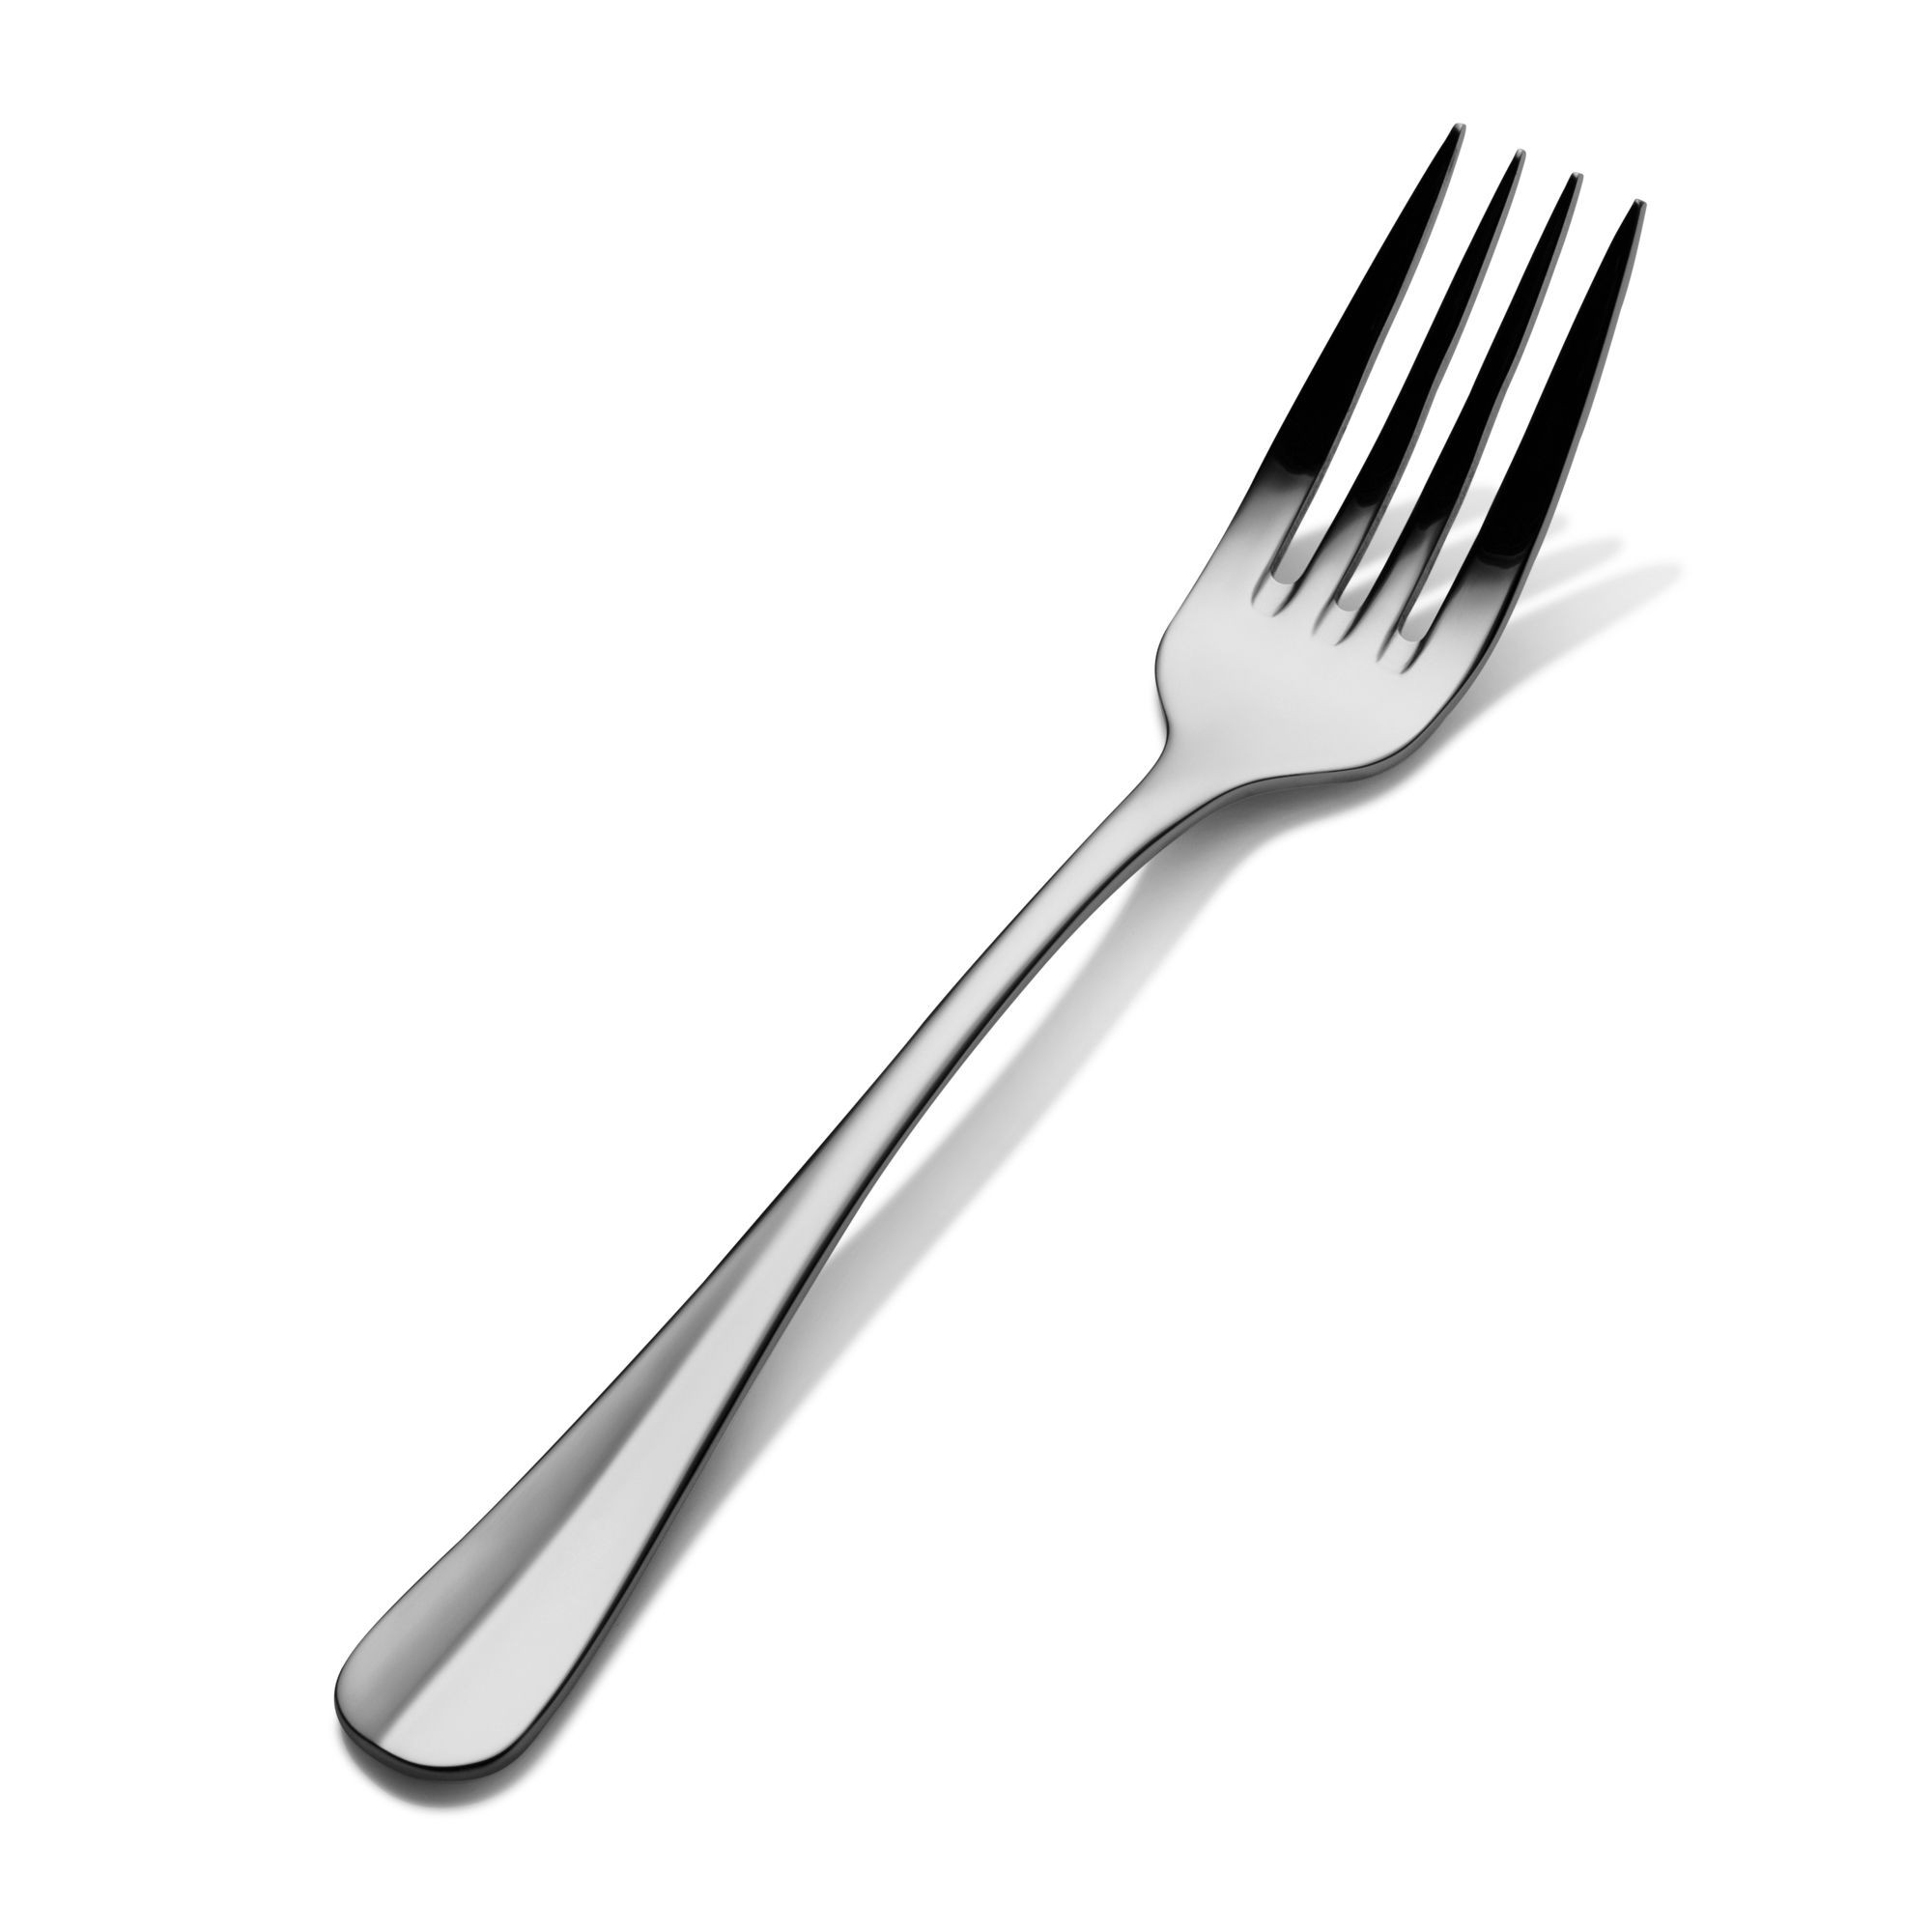 Bon Chef SBS1105 Chambers Bonsteel Regular Dinner Fork